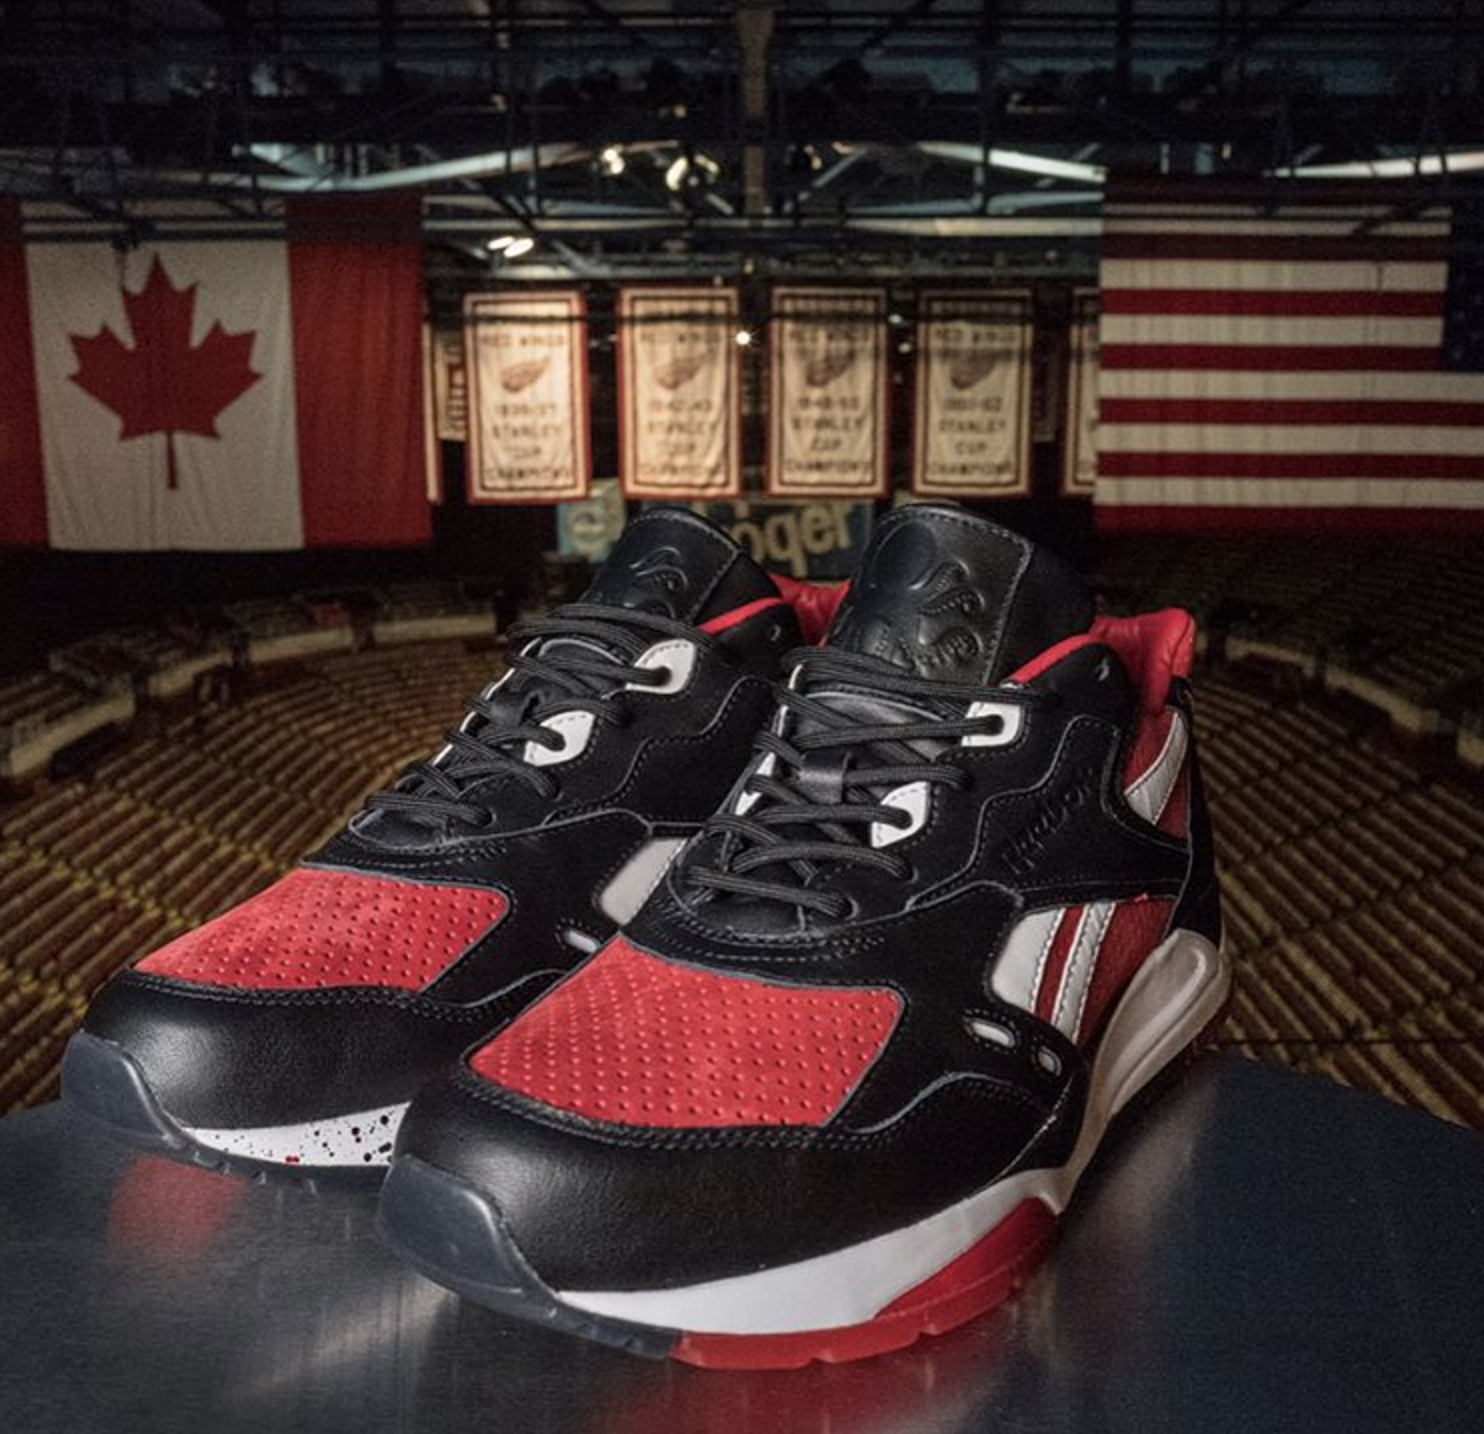 Burn Rubber x Detroit Red Wings x Reebok Bolton 6